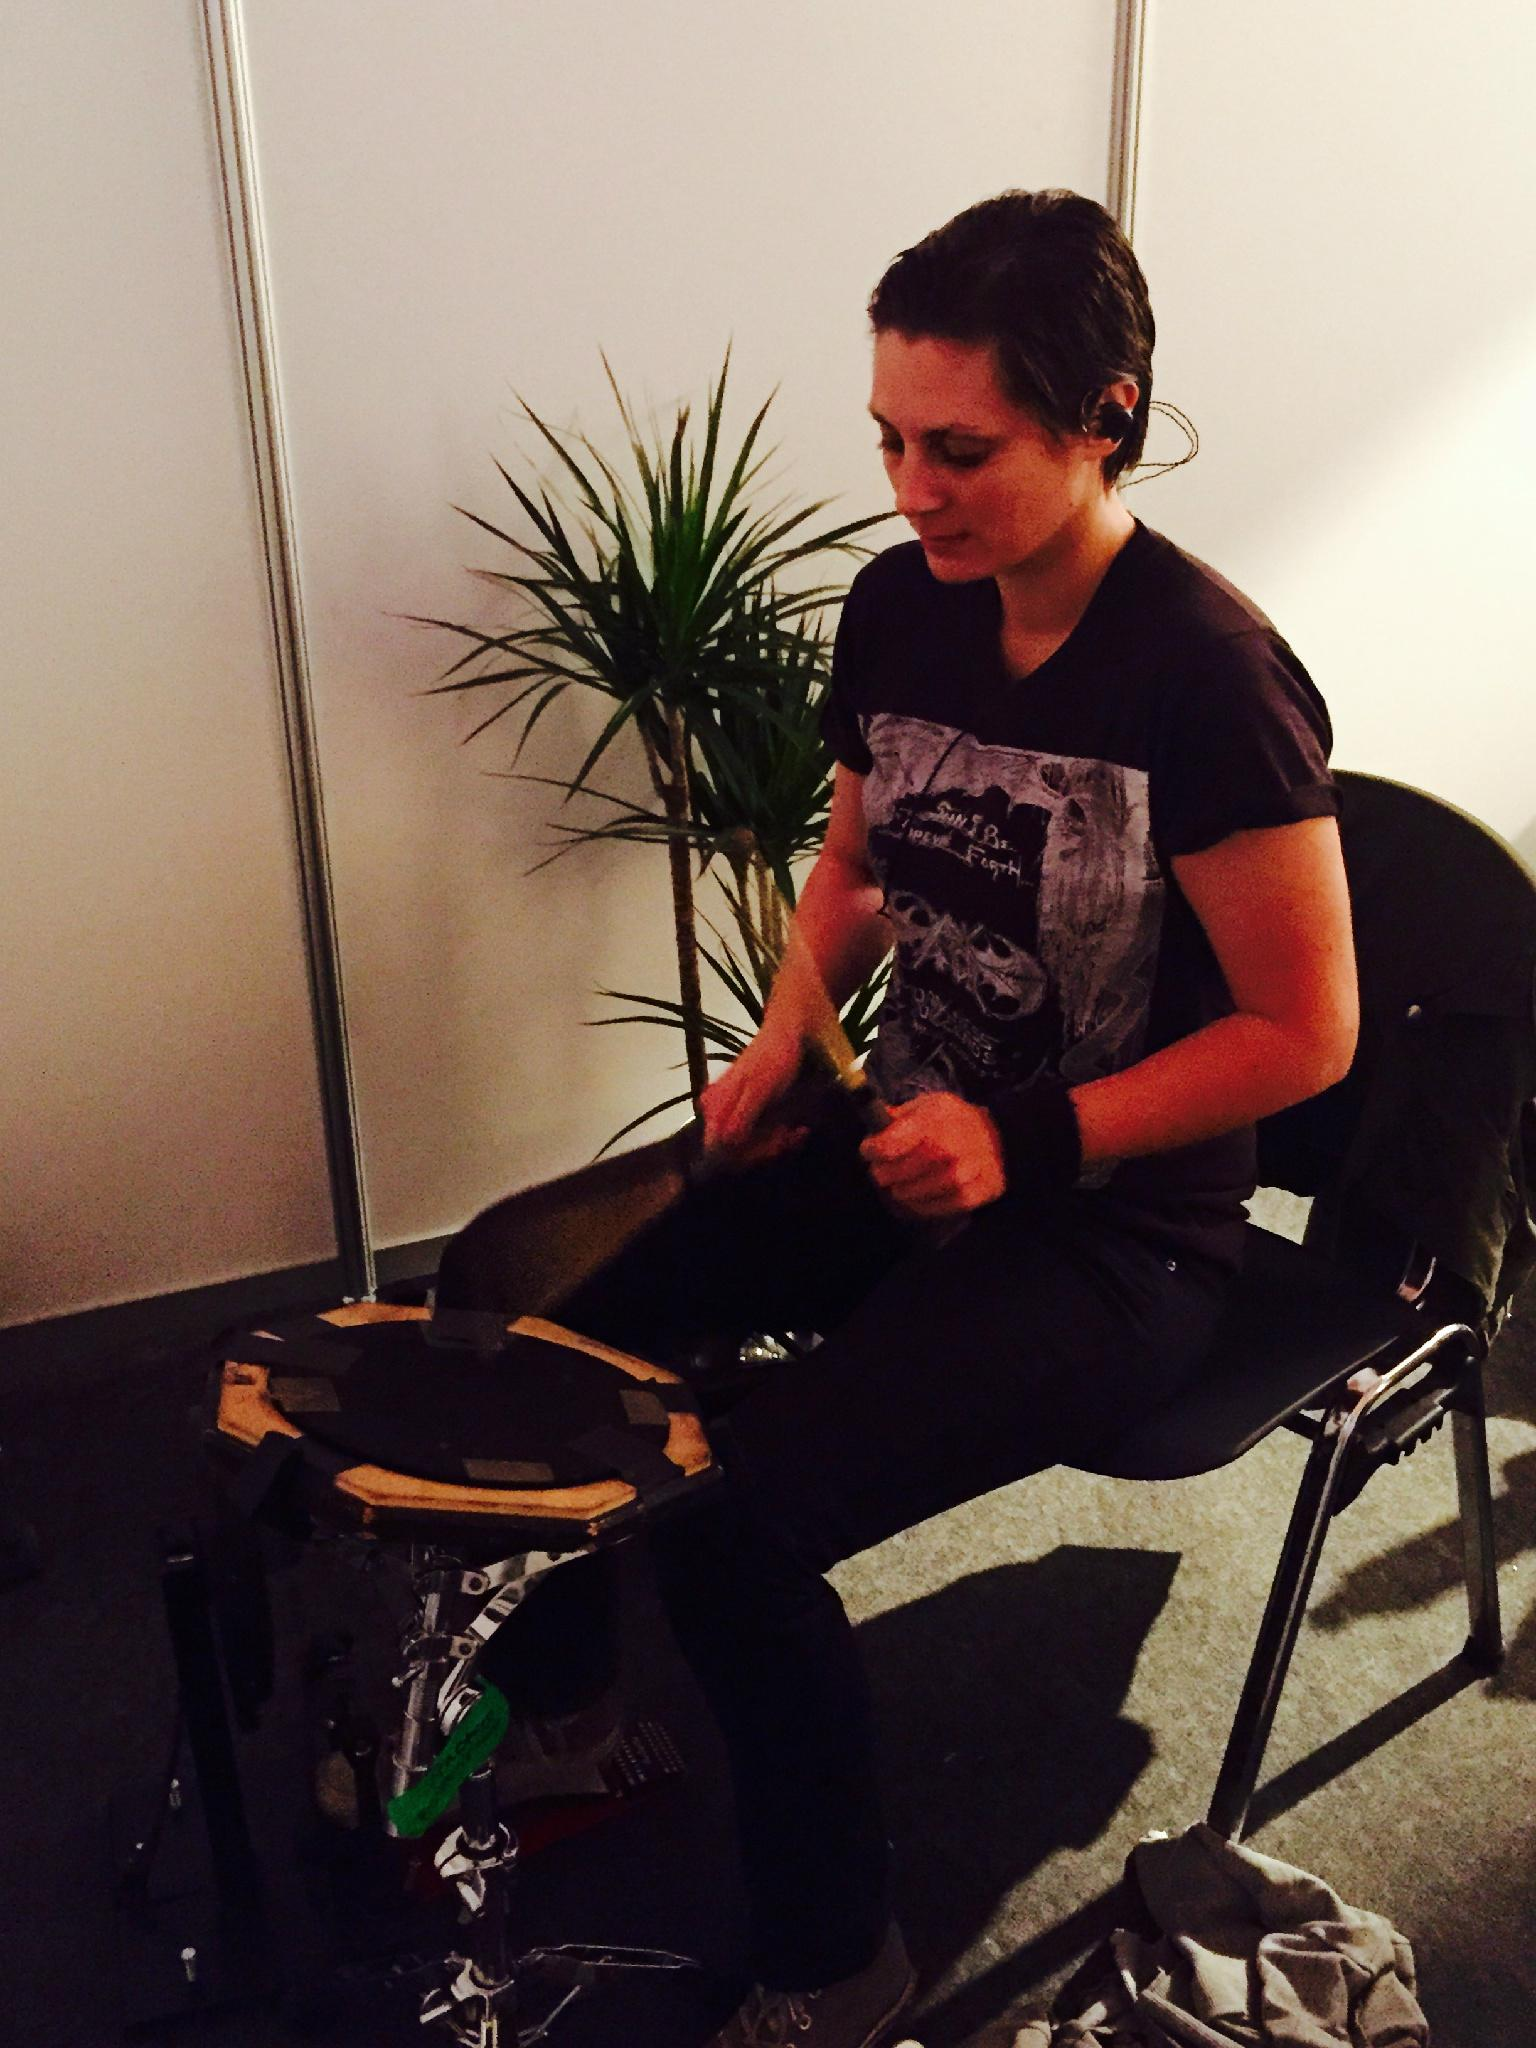 Leah backstage warming up for her first show (Southside Festival) following her brain surgery and months of recovery. http://t.co/HEA5yMYhlQ